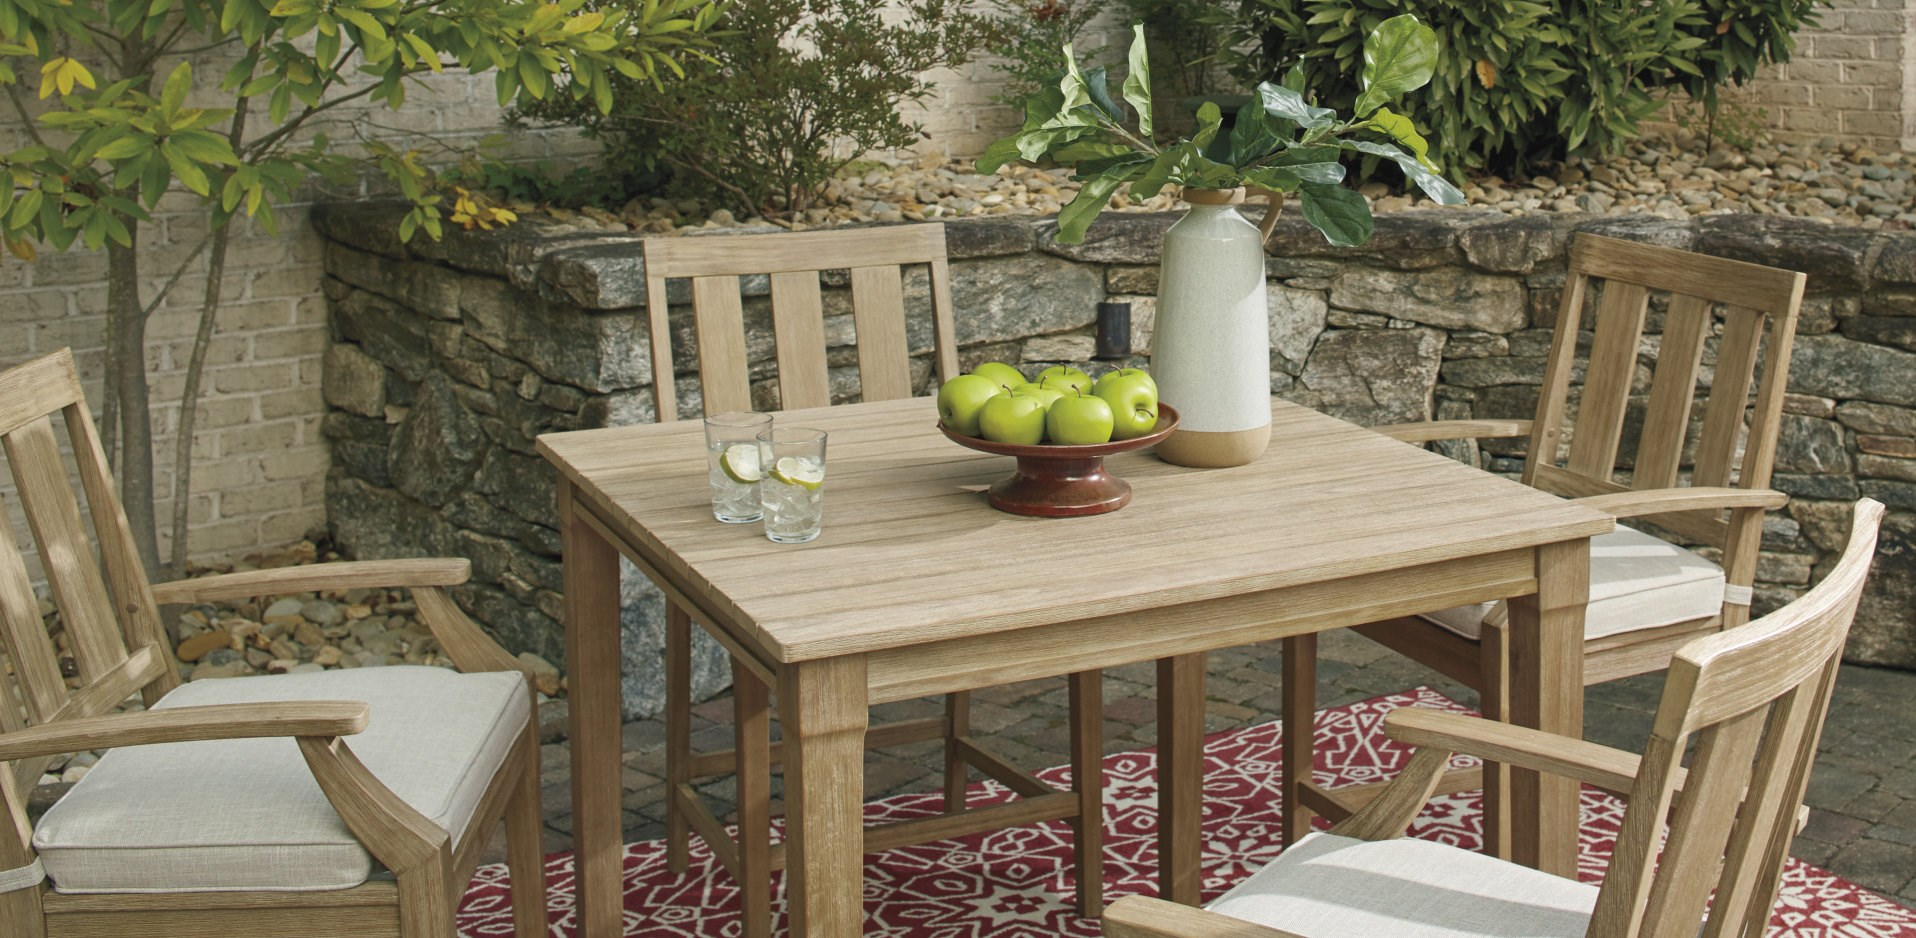 outdoor wood table with chairs